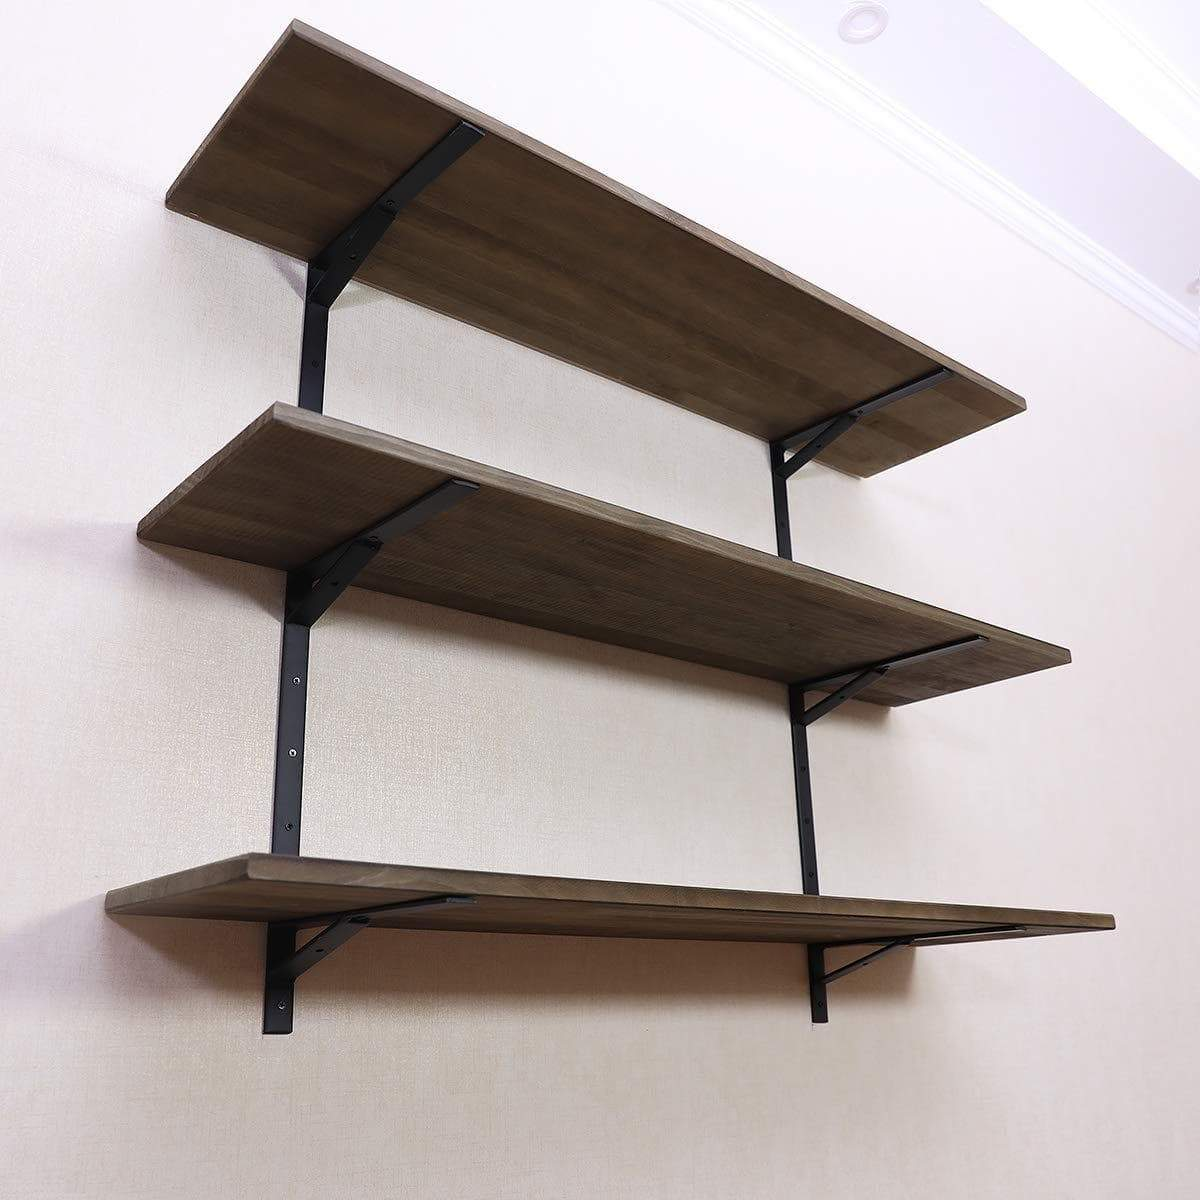 Budget puncia 48 industrial long pine solid wood wall floating storage shelf farmhouse kitchen bar display wooden wall bookcase tool shelves 48in x 12in x 0 8in x 3 tiers l brown